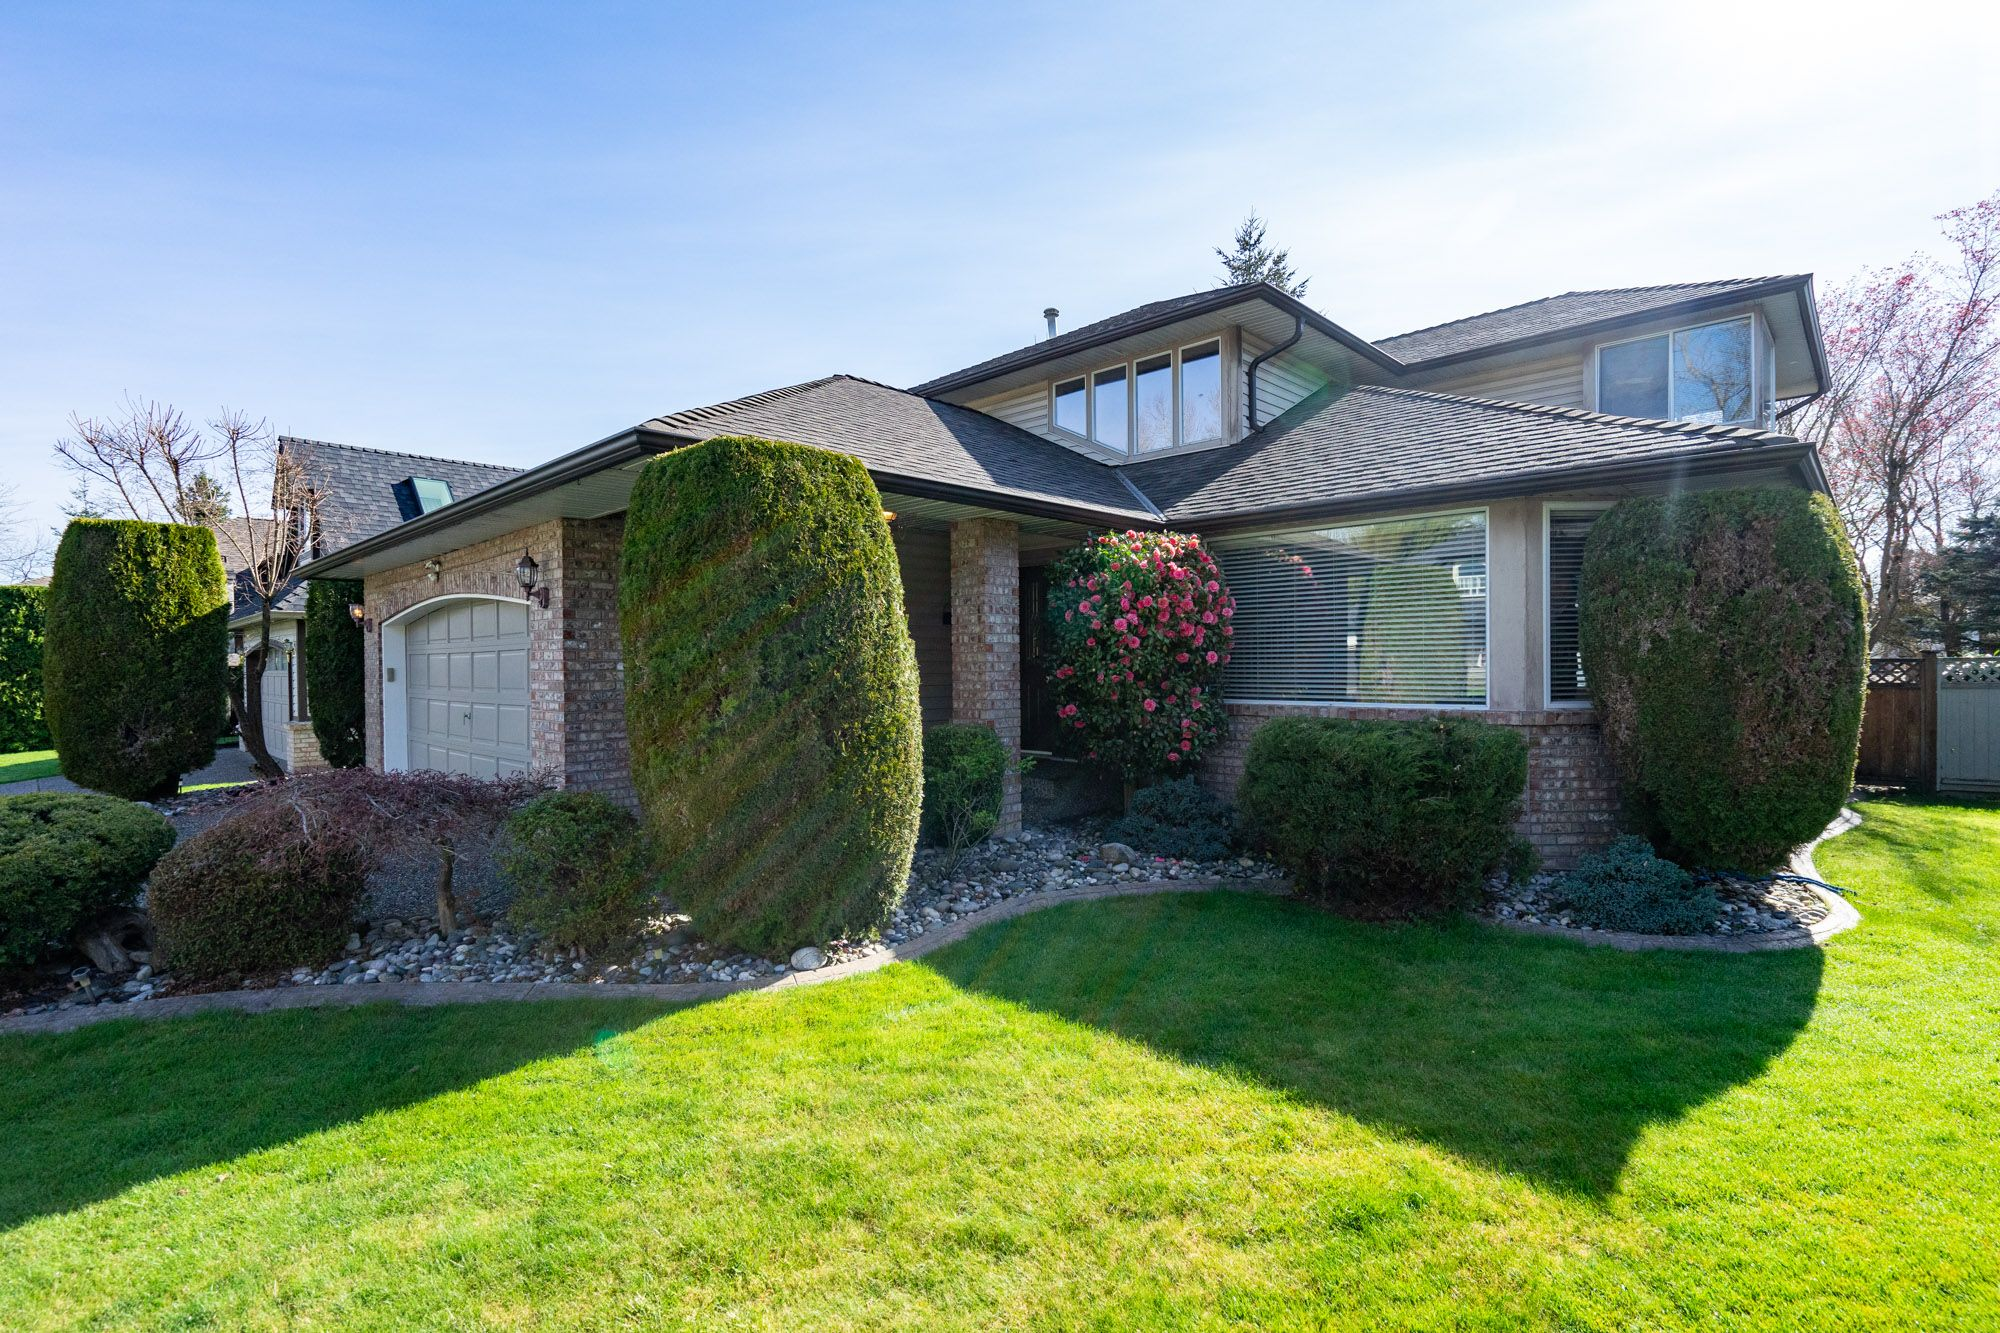 """Photo 3: Photos: 8448 213 Street in Langley: Walnut Grove House for sale in """"Forest Hills"""" : MLS®# R2259409"""